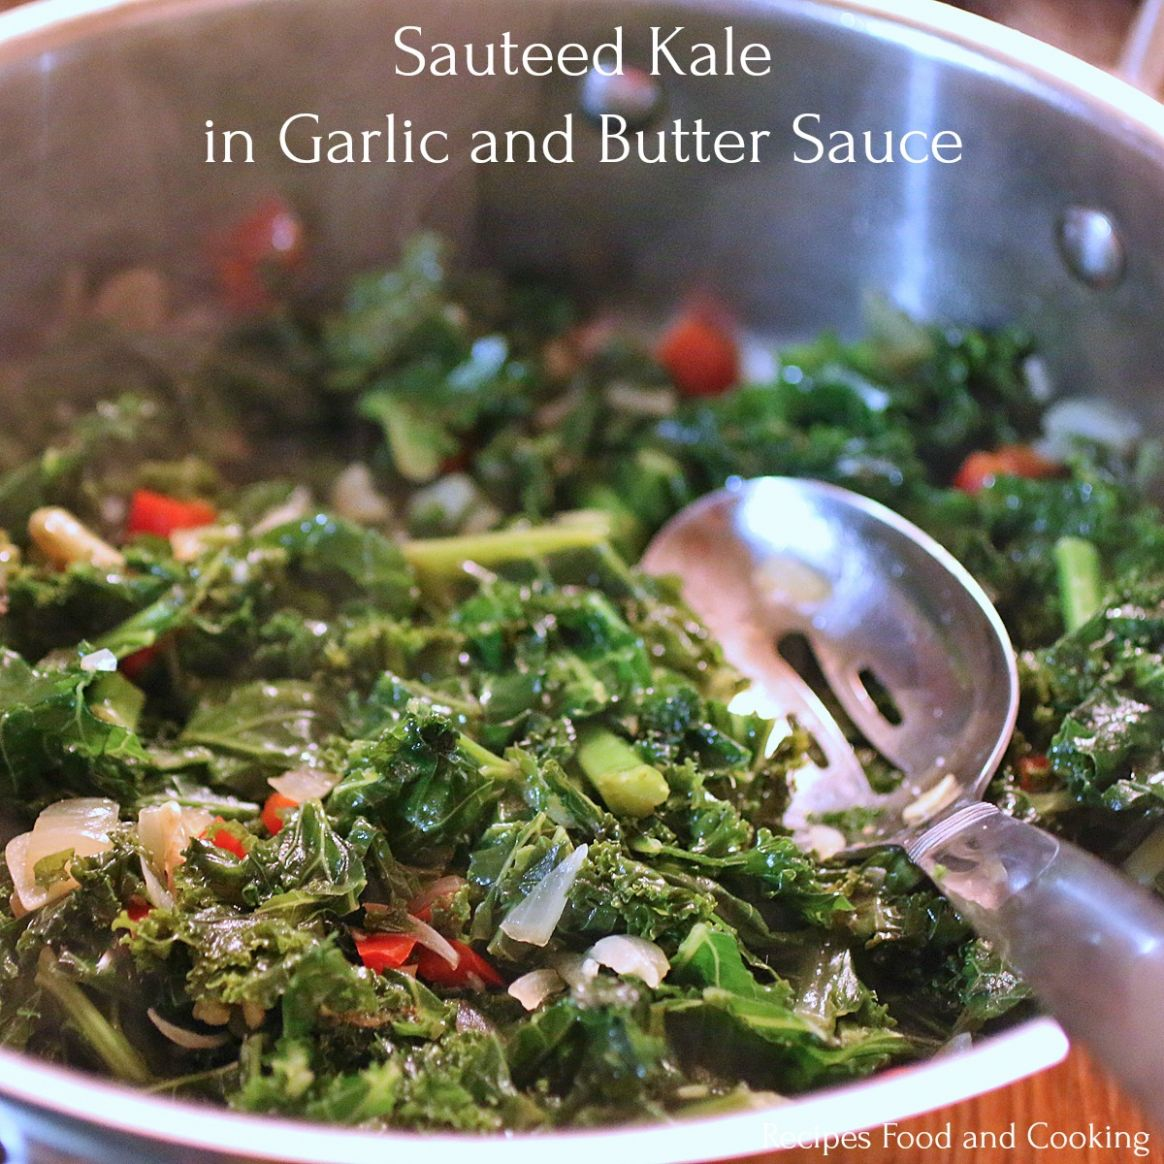 Sauteed Kale in Garlic and Butter Sauce